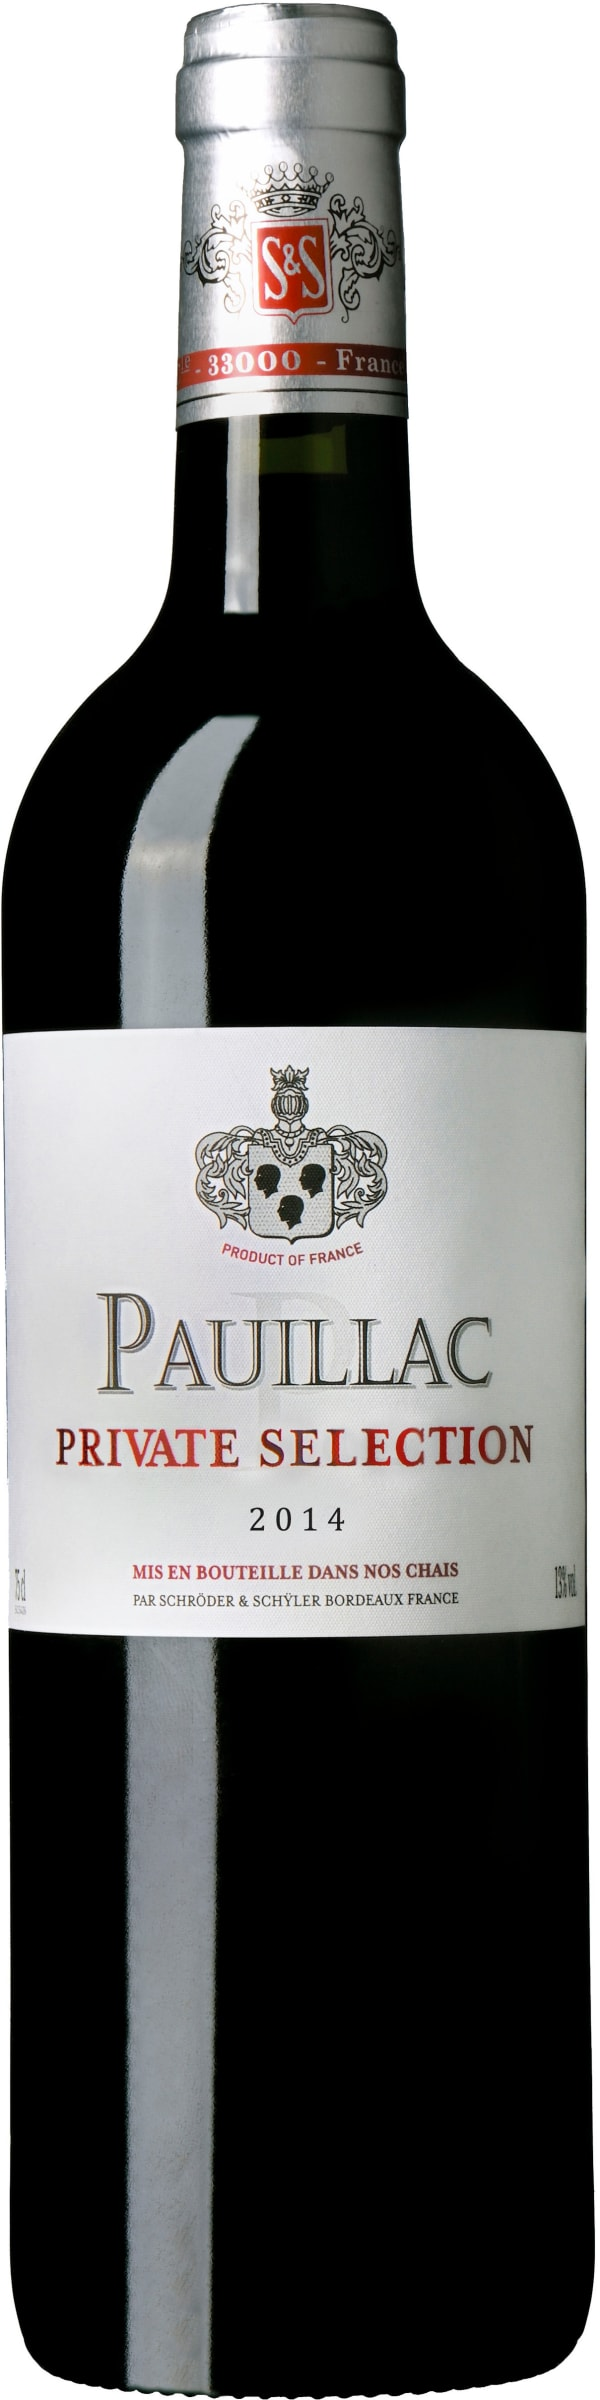 Private Selection Pauillac 2014